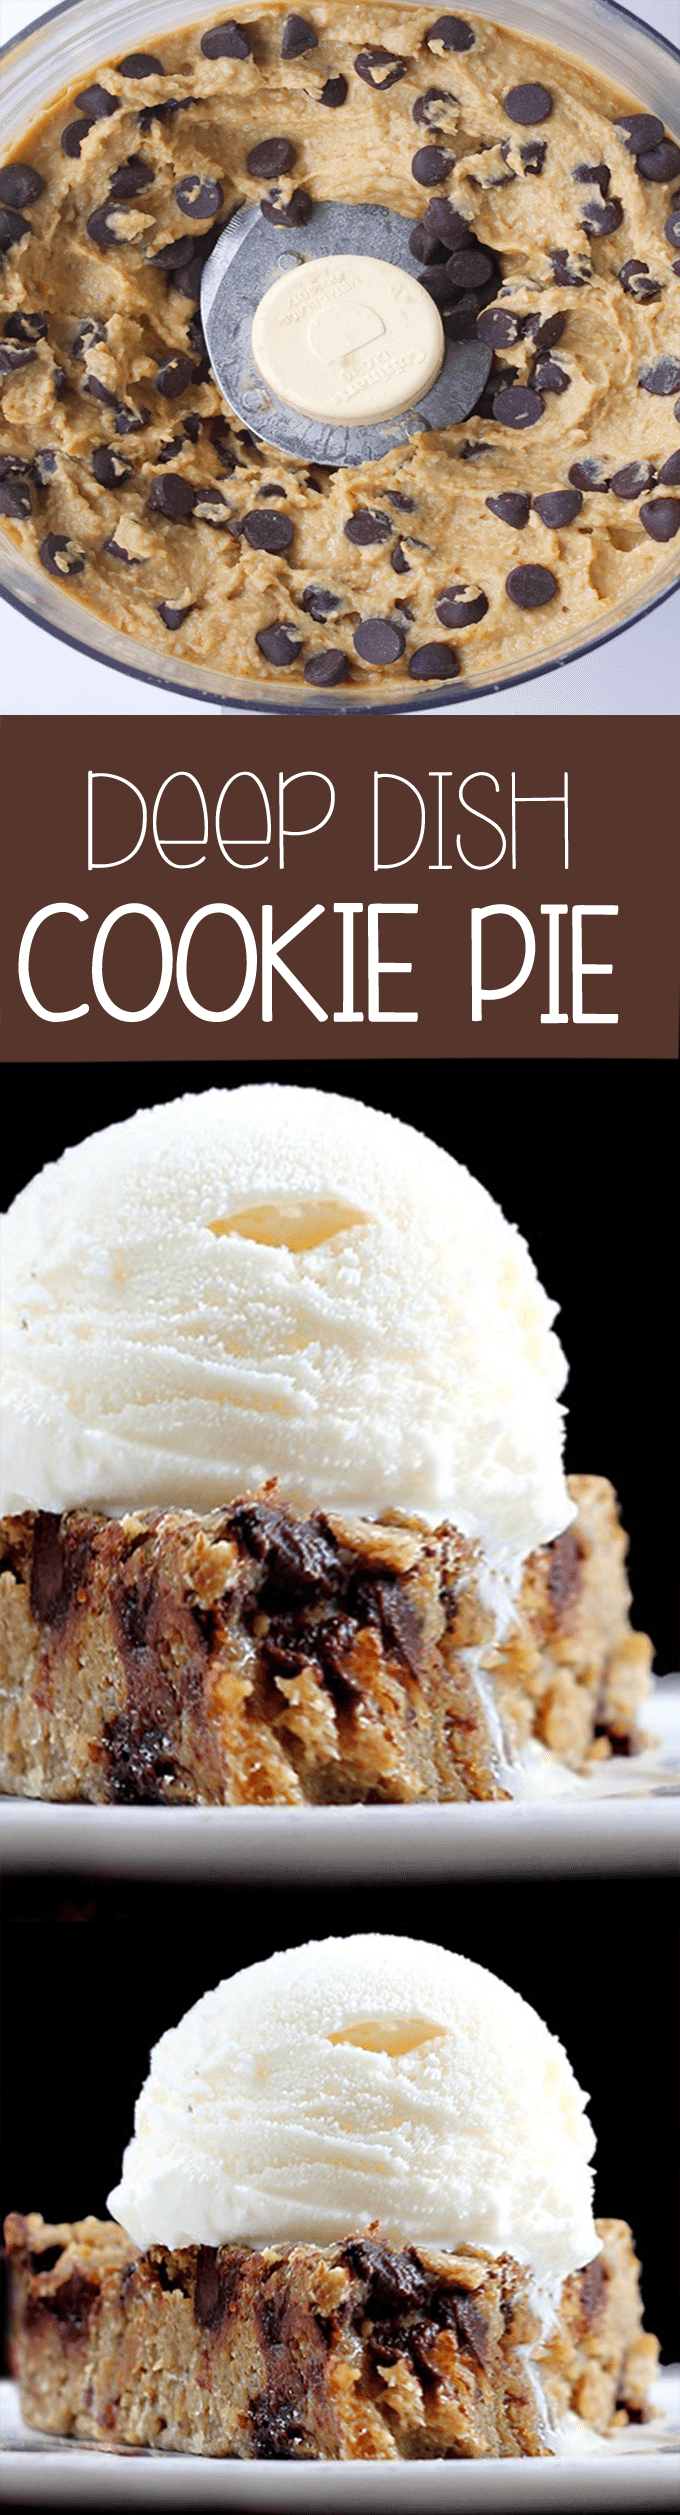 Deep Dish Cookie Pie – One of our favorite recipes! It tastes like eating a giant homemade chocolate chip cookie!… Recipe, as featured on ABC News: @choccoveredkt http://chocolatecoveredkatie.com